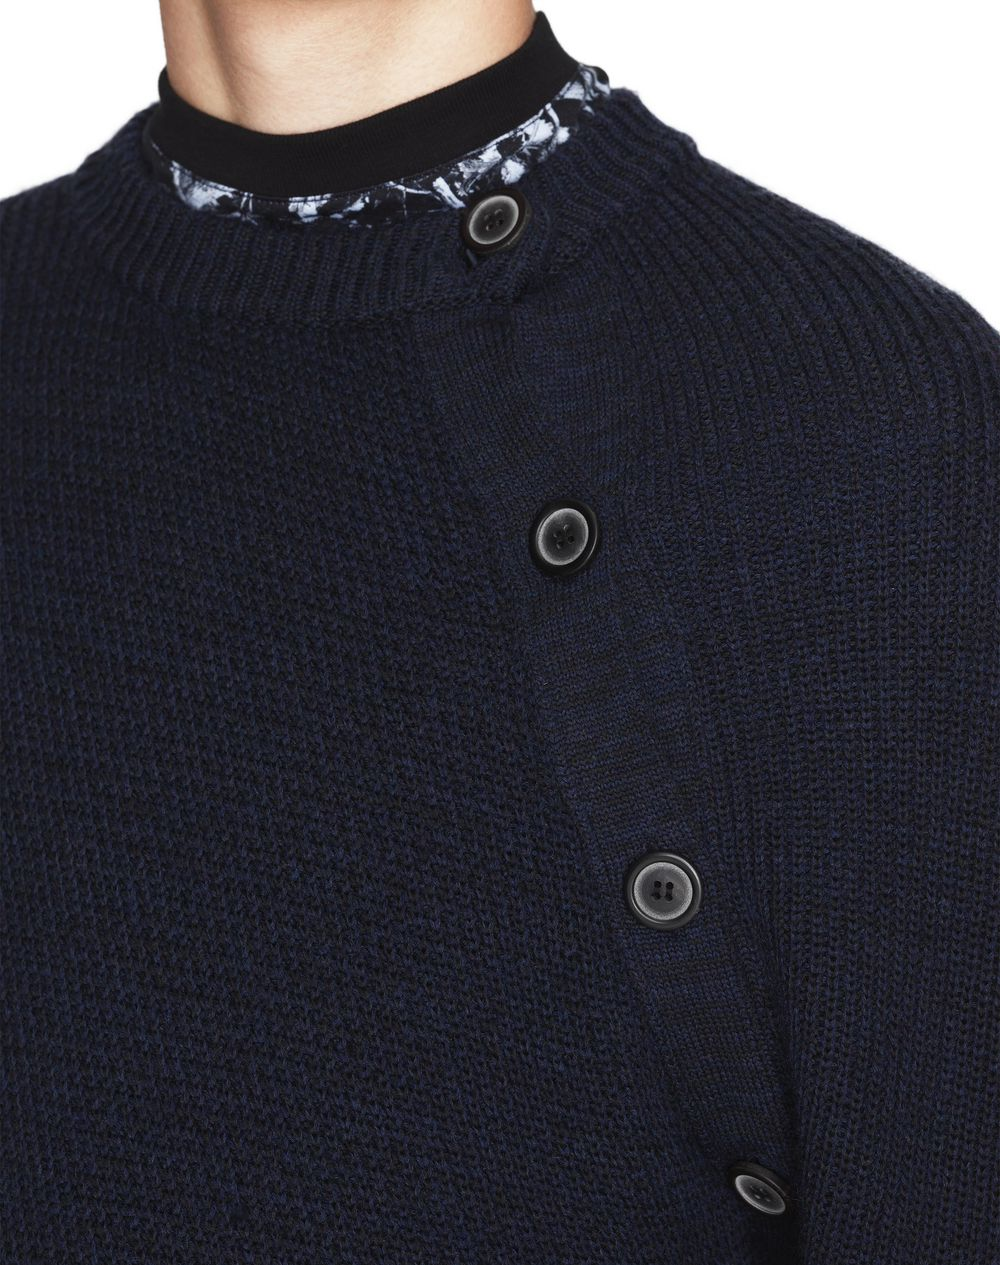 NAVY BLUE BUTTONED COLLAR SWEATER - Lanvin